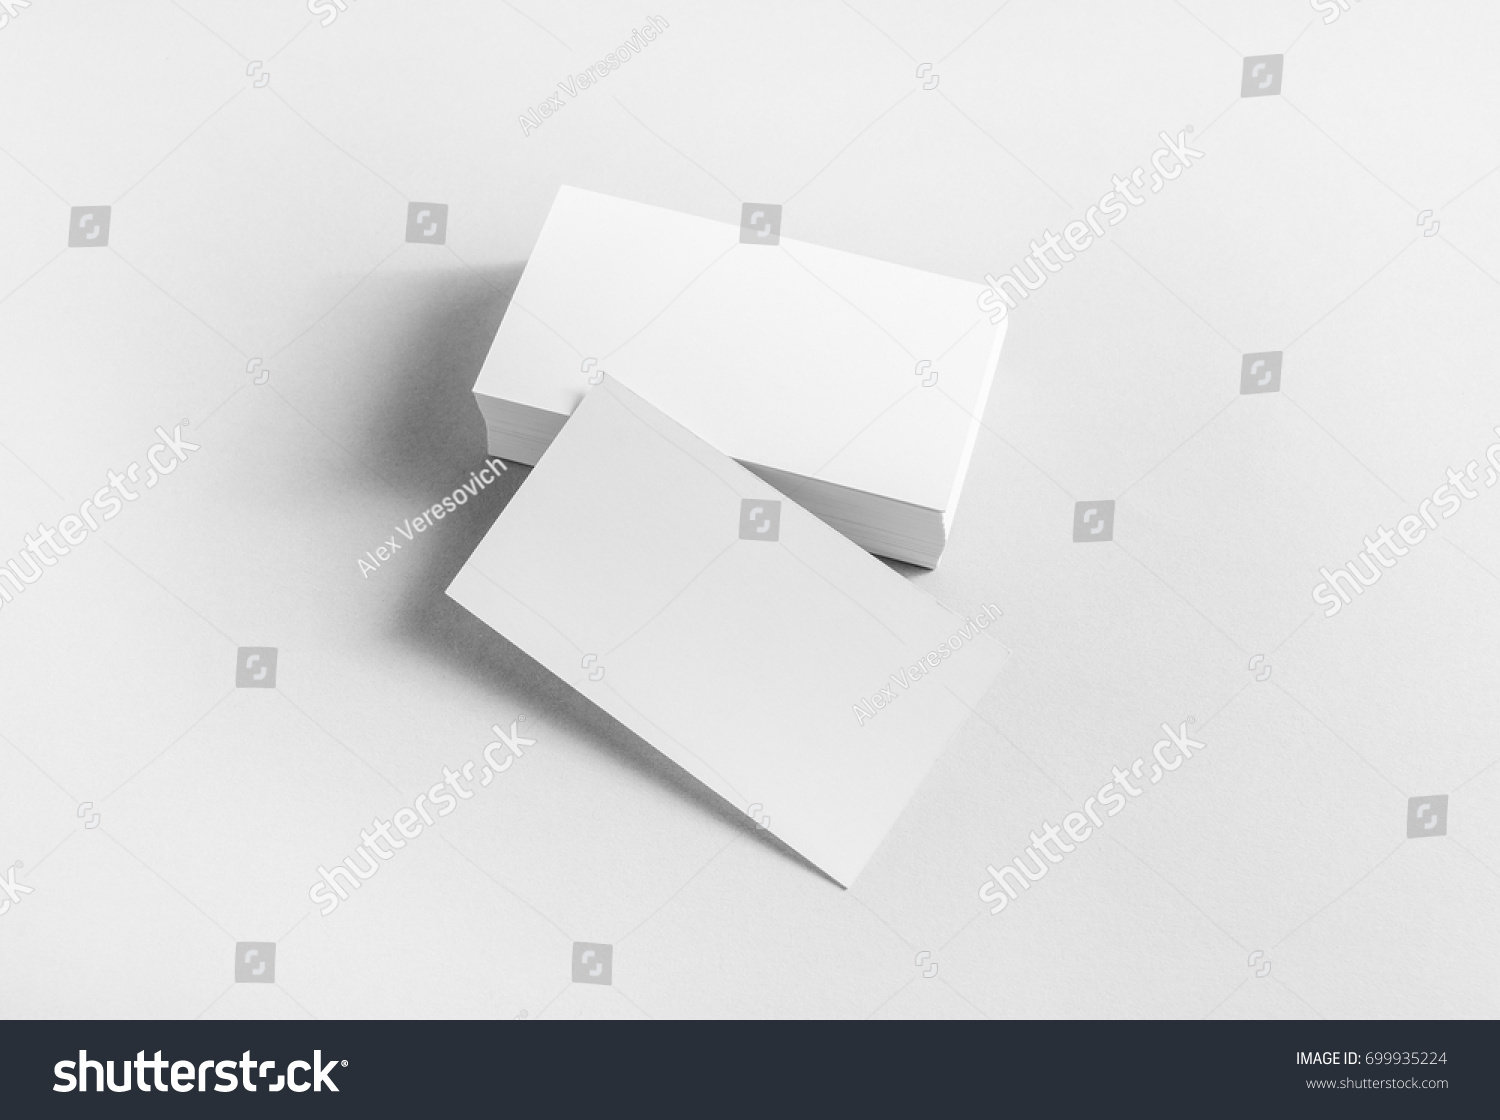 Blank Business Cards On Paper Background Stock Photo 699935224 ...